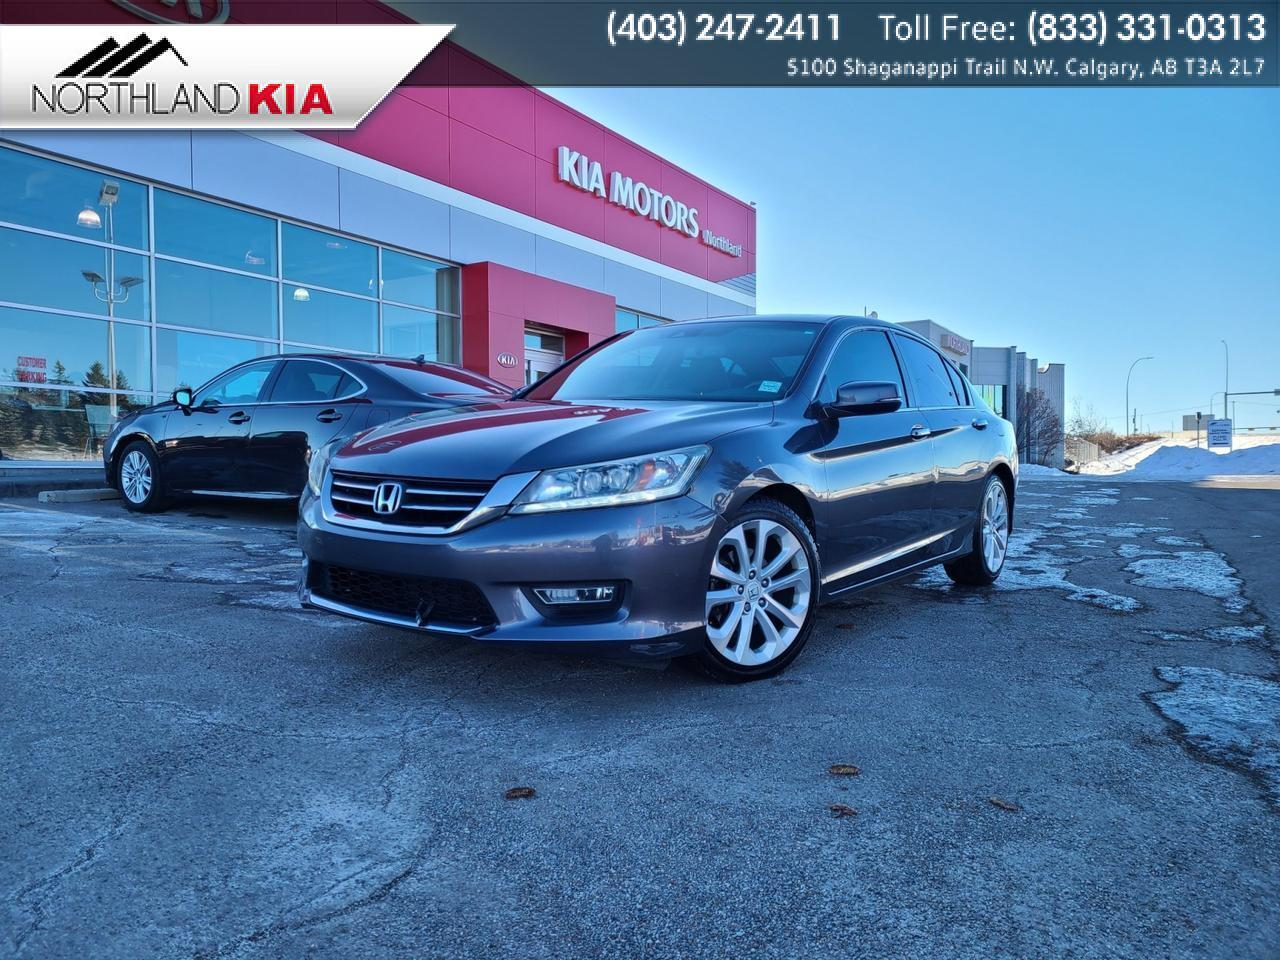 2013 Honda Accord Sedan Touring HEATED FRONT/BACK SEATS, BACKUP CAMERA, NAV, BLINDSPOT MONITOR Calgary AB